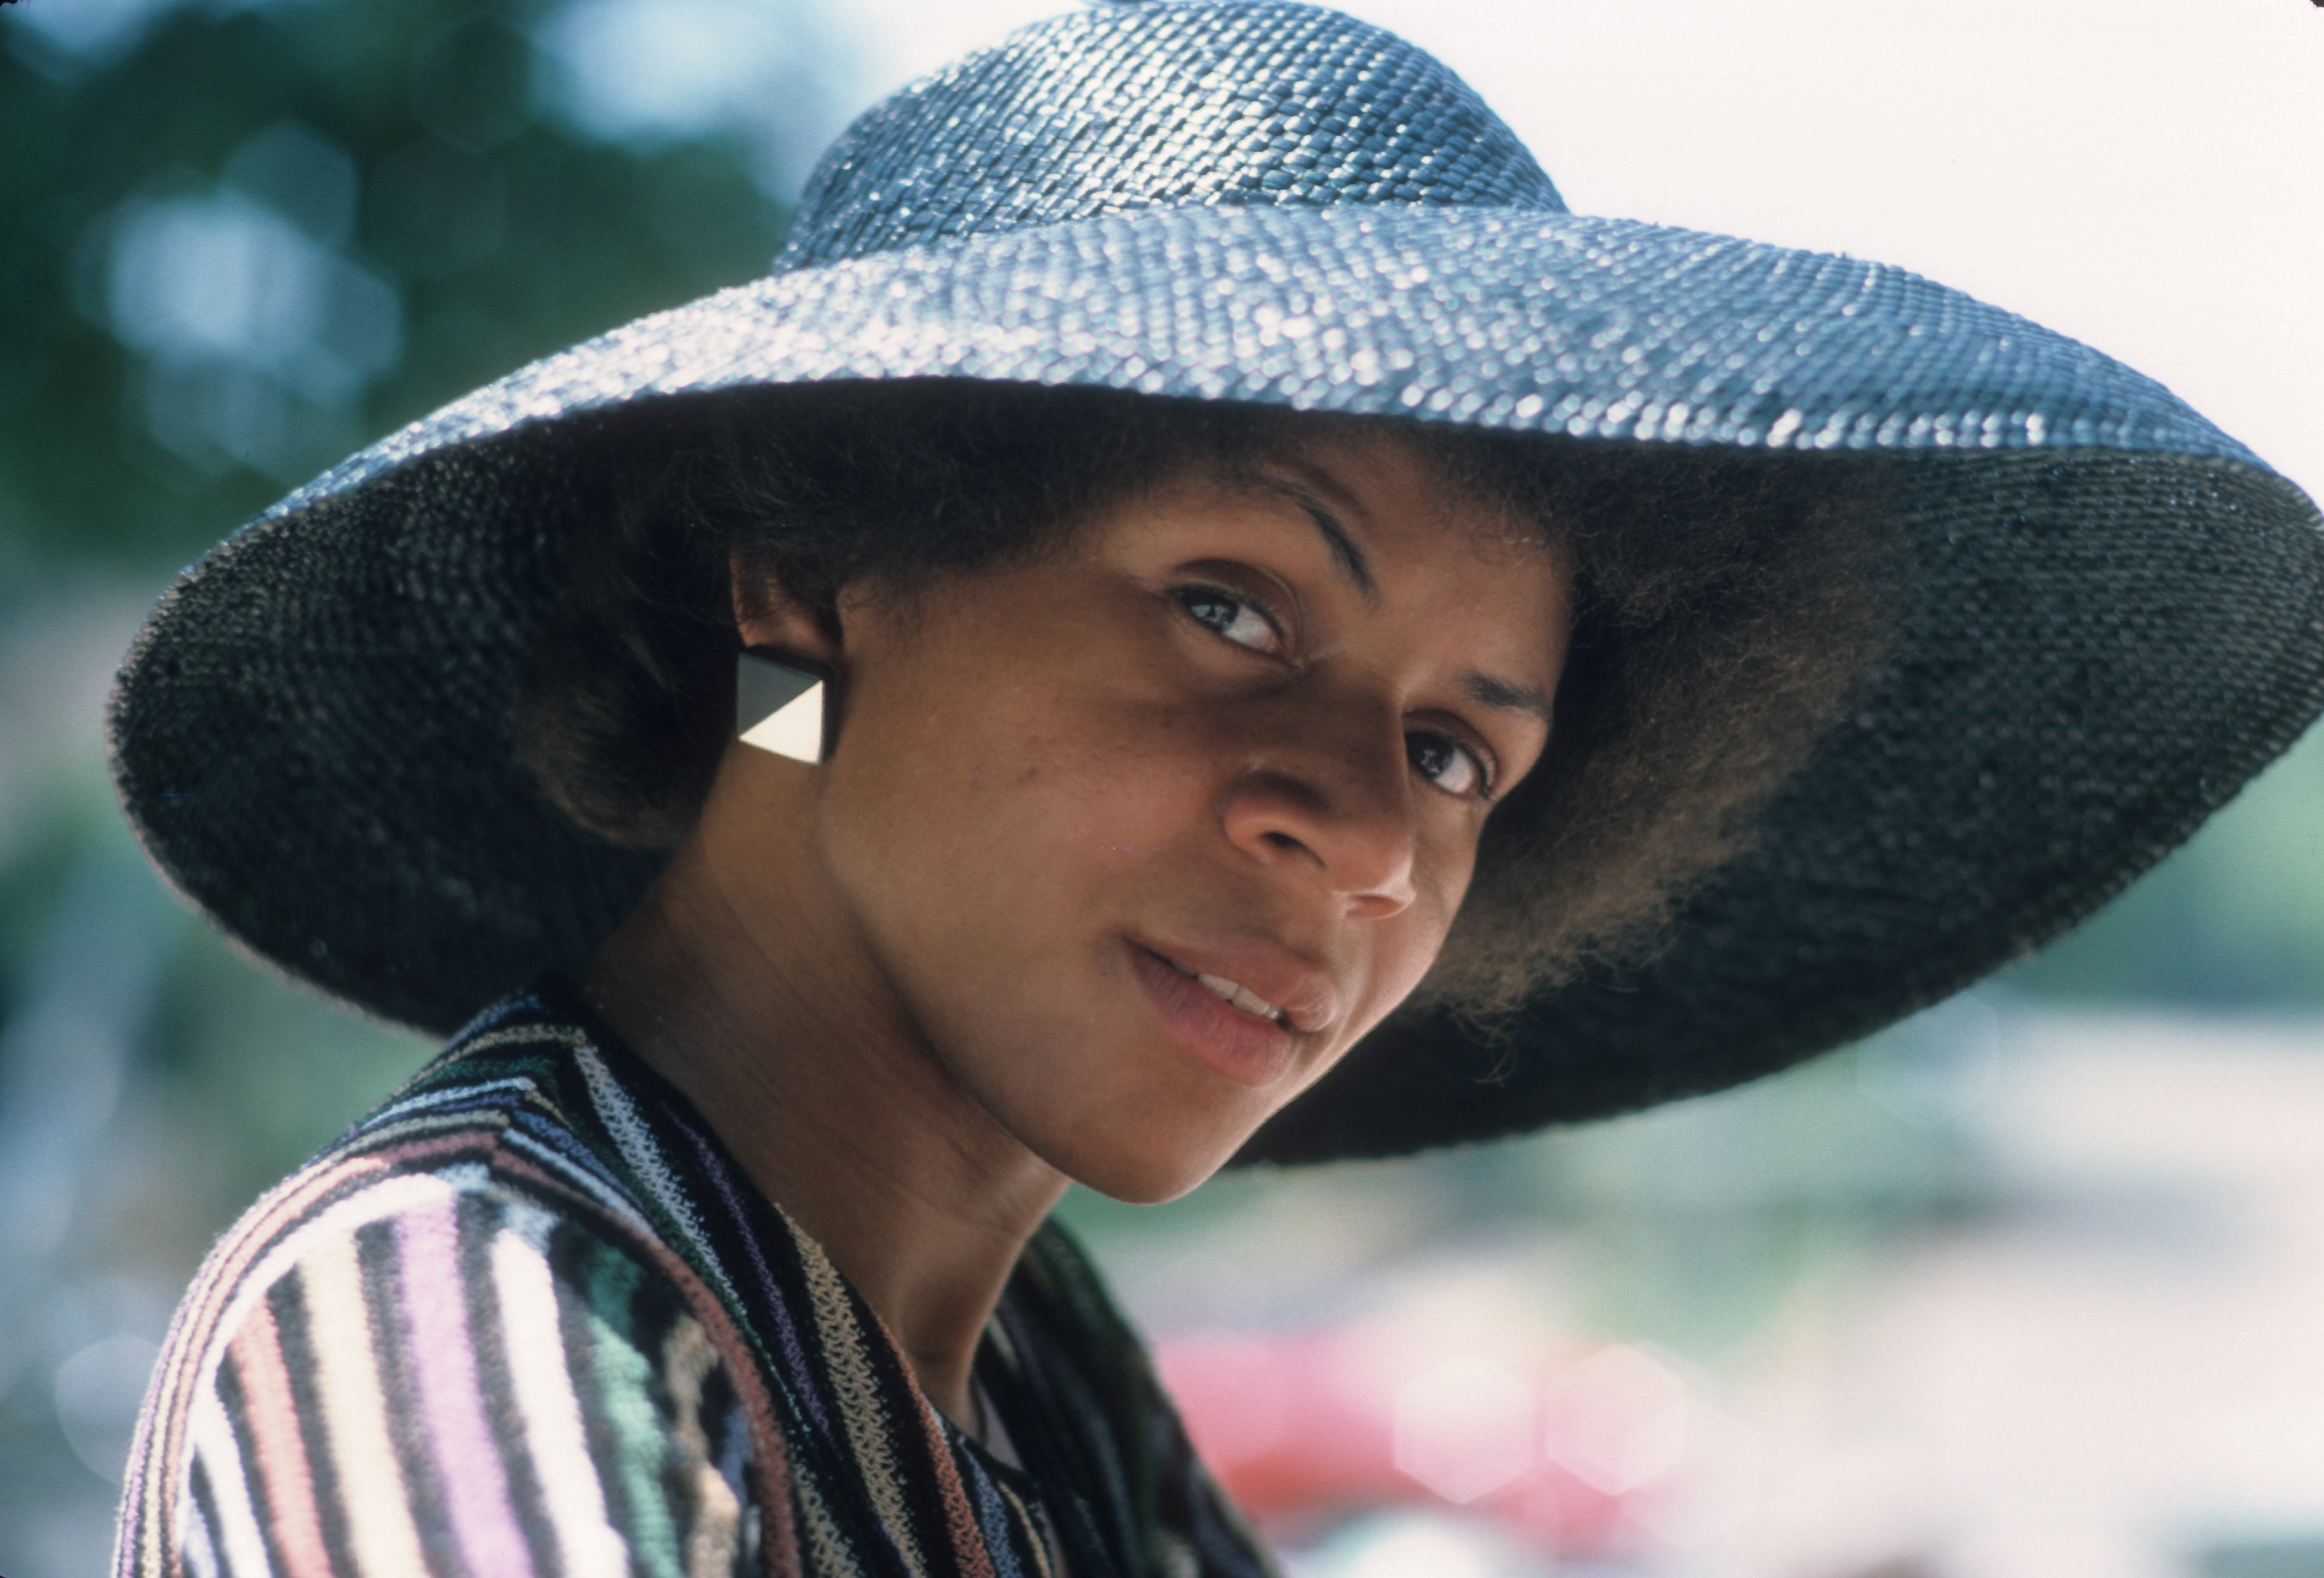 Minnie Riperton poses for a portrait in August 1975 in Los Angeles, California | Photo: Getty Images